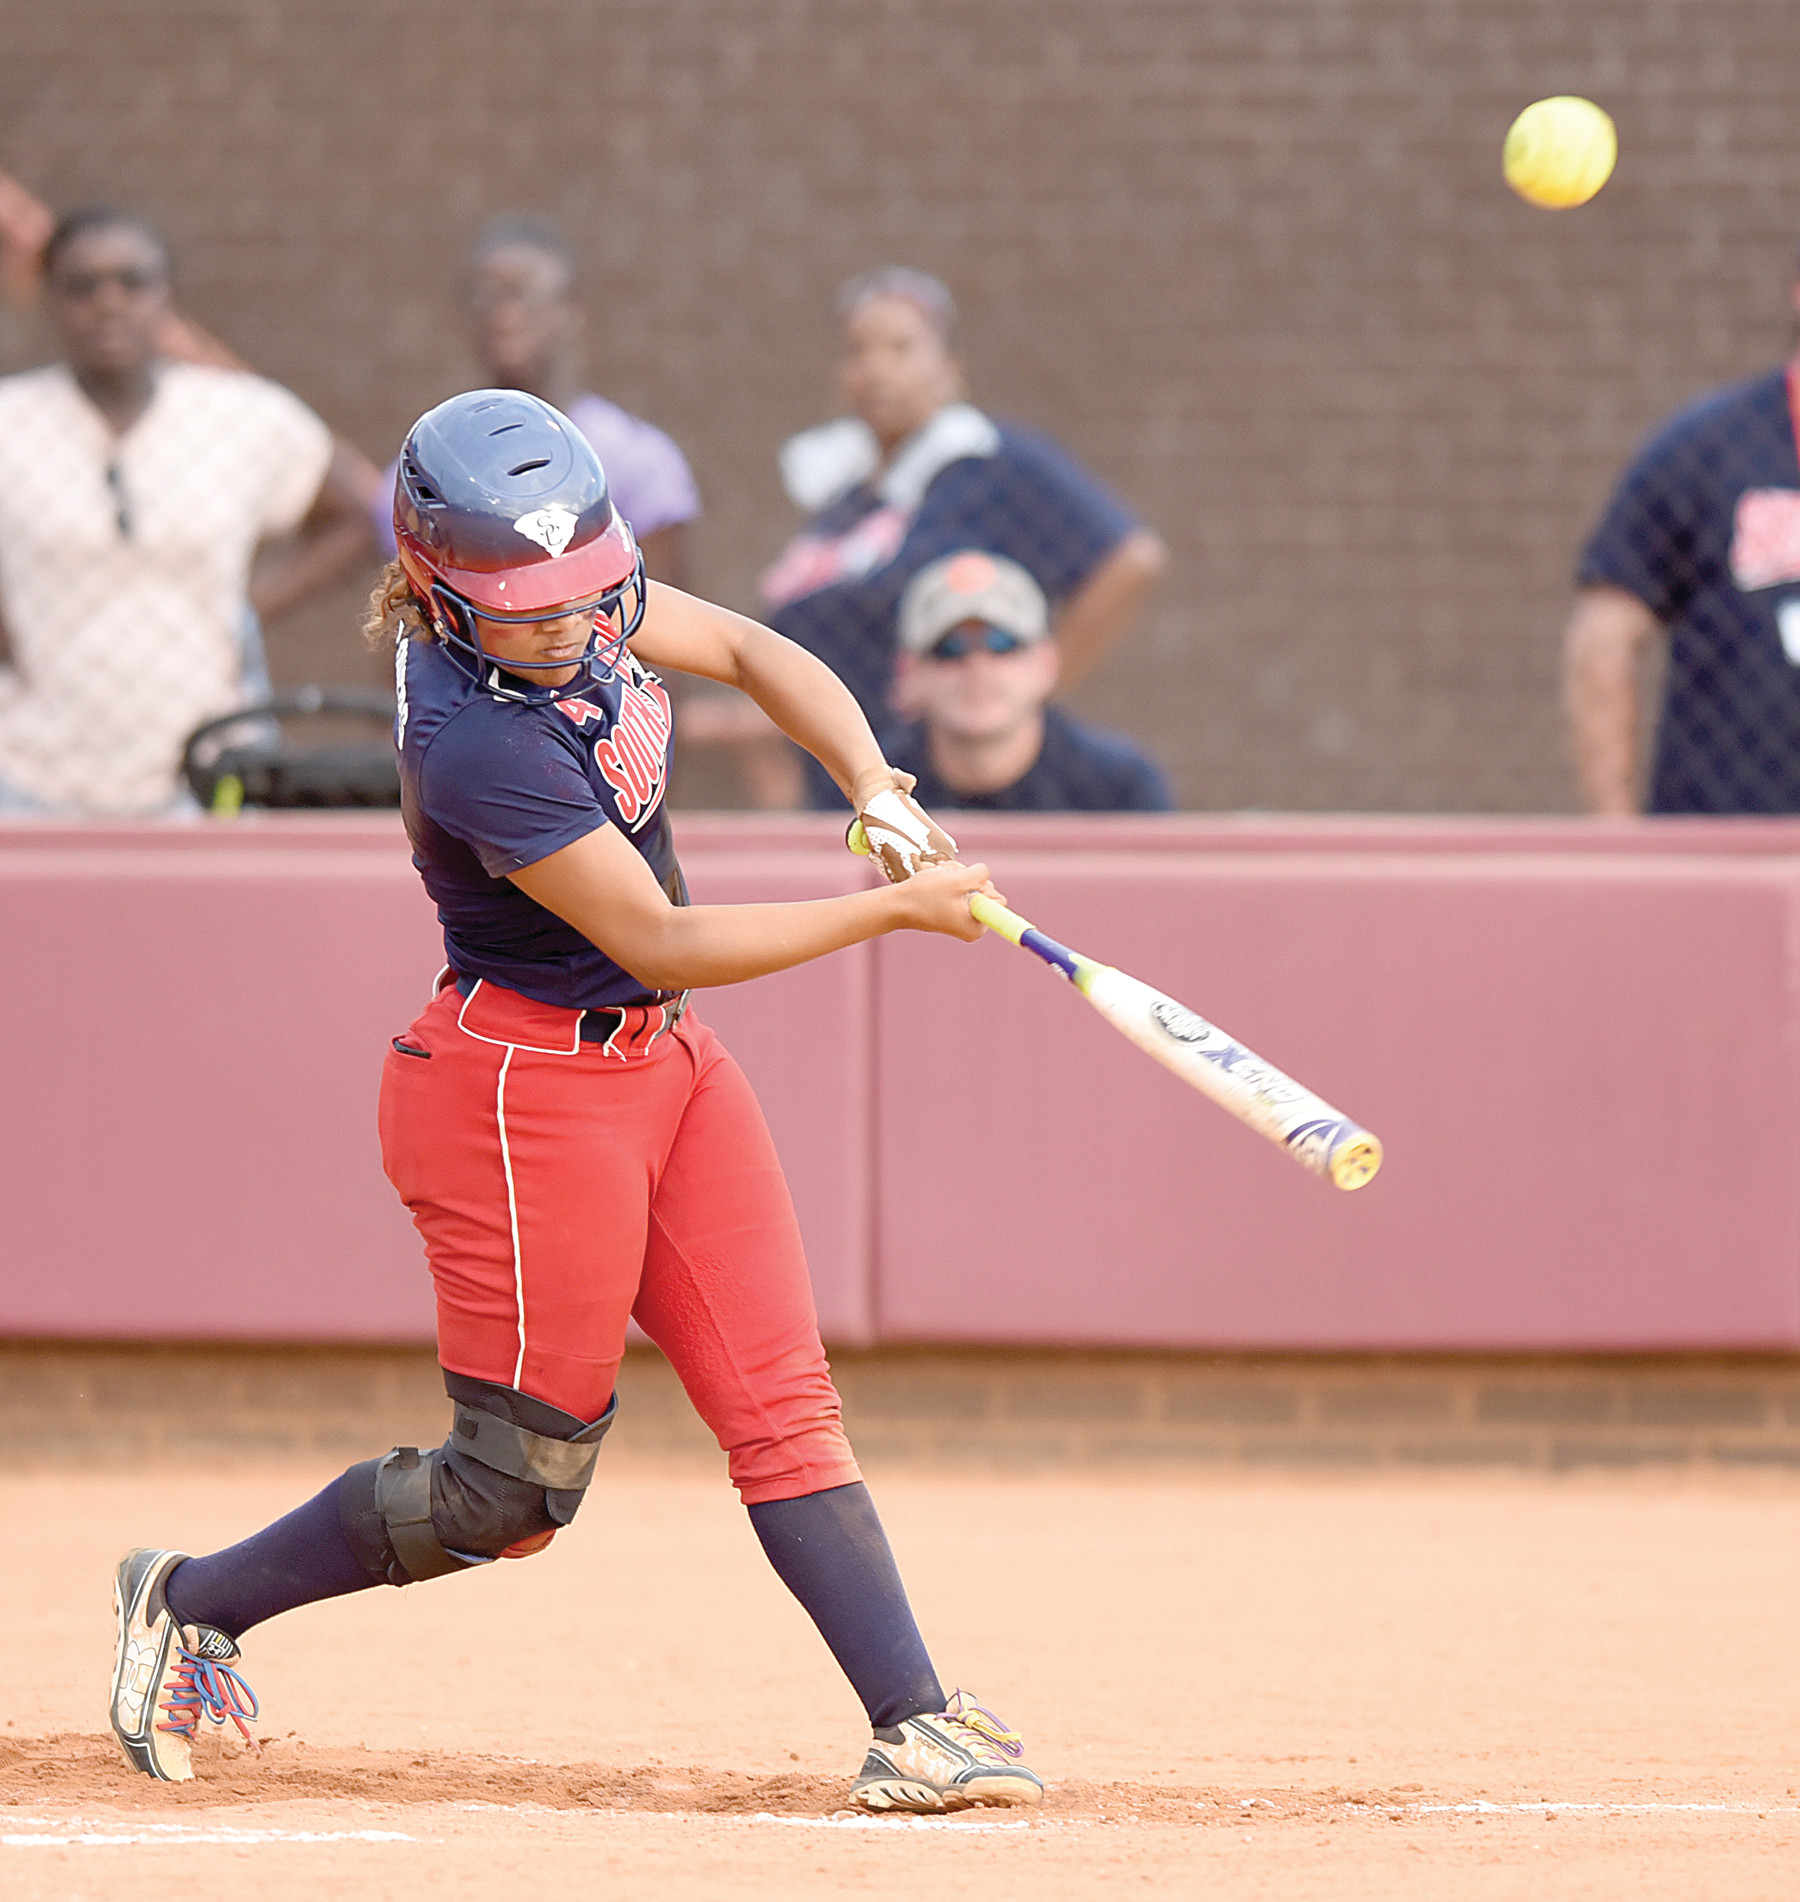 Florence Belles fall to Louisiana | The Sumter Item